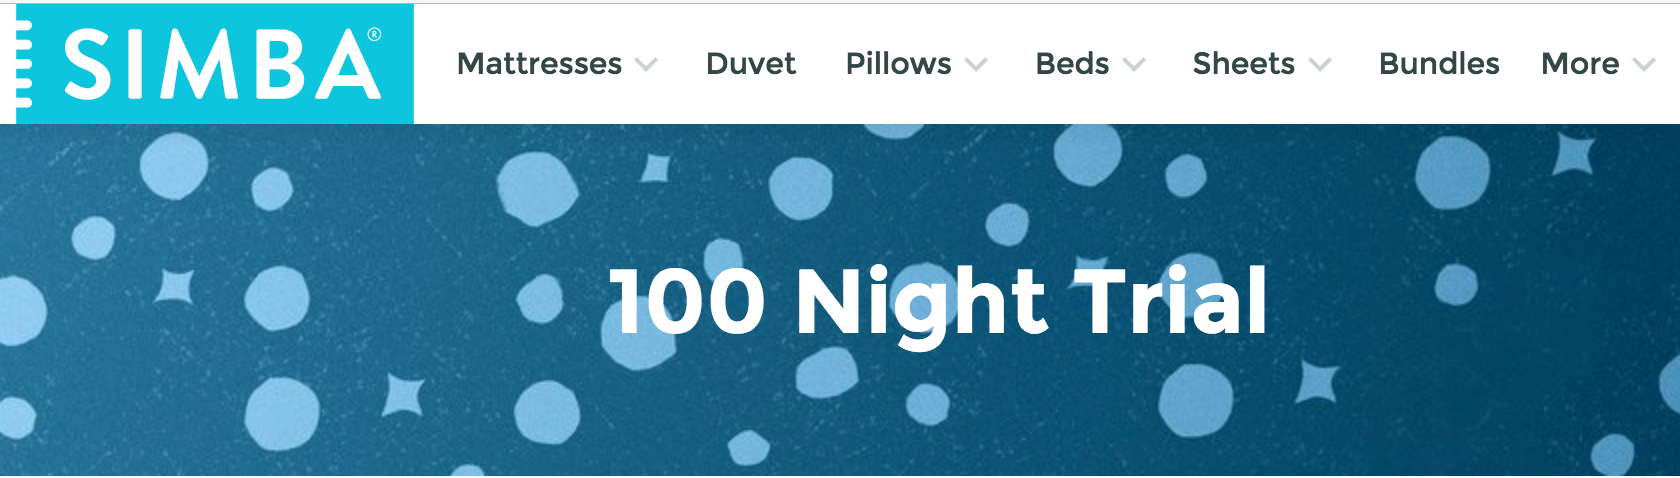 Simba's 100-night trial has been a customer success.